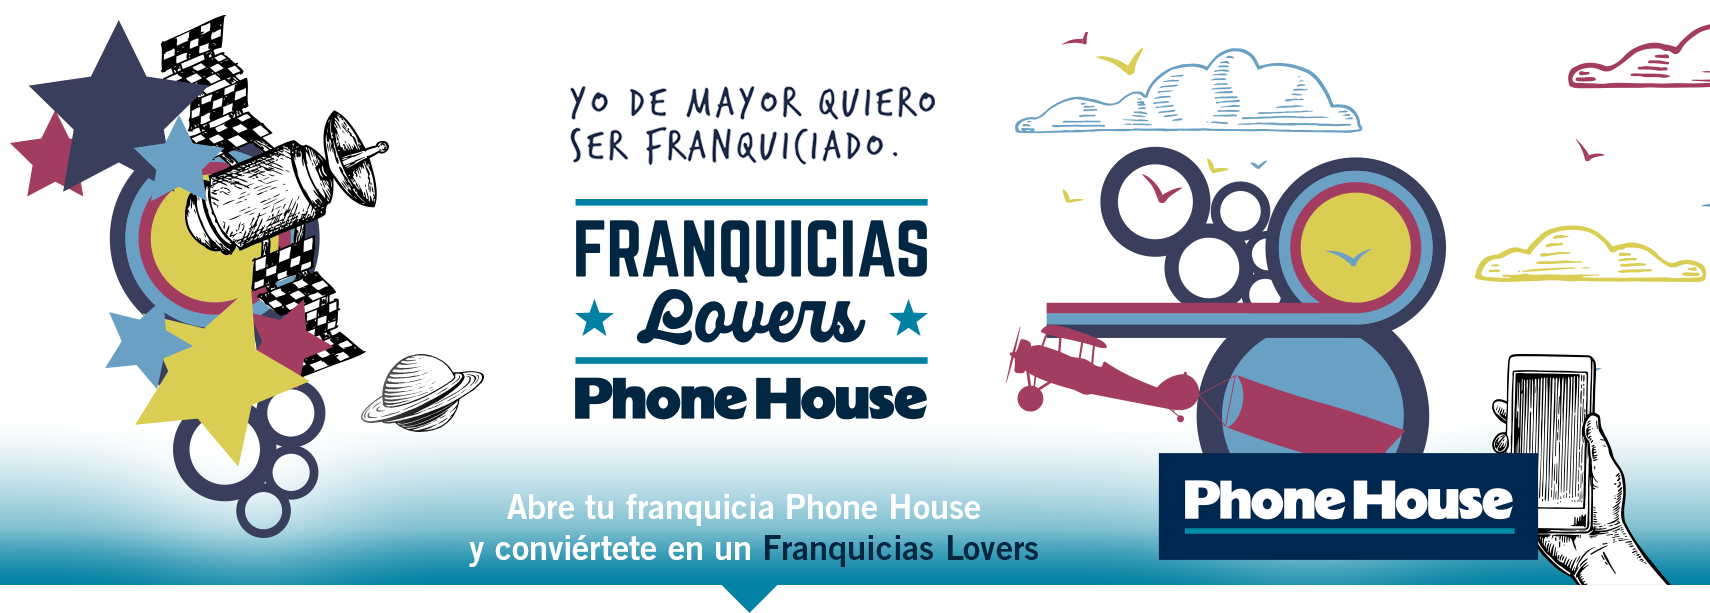 Franquicias - Phone House